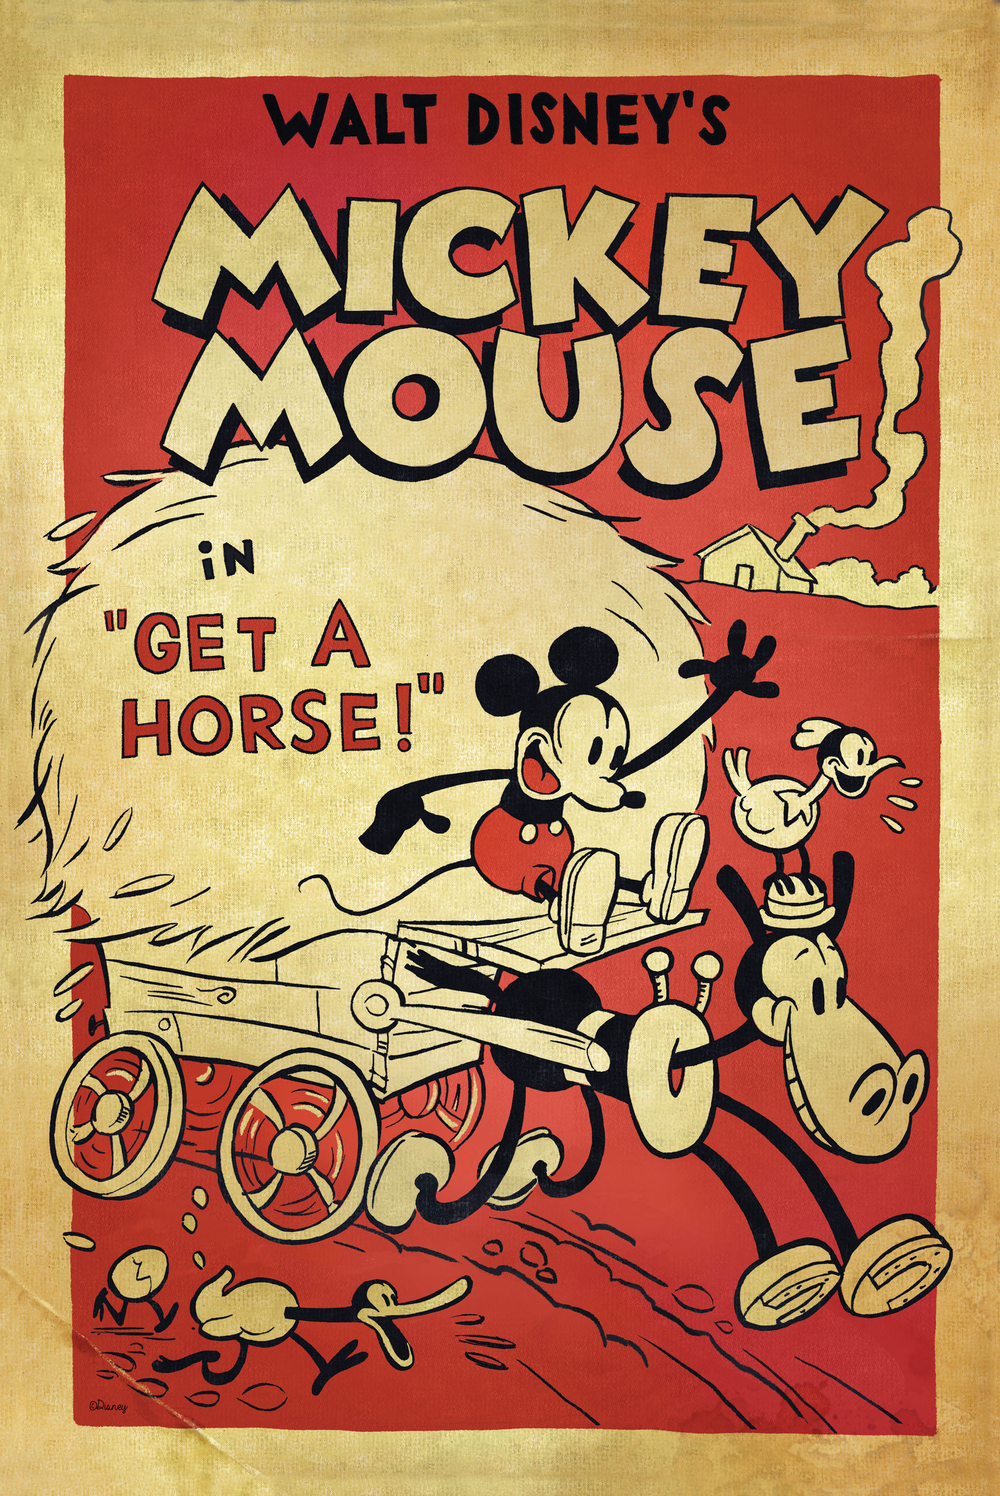 clip-from-great-new-mickey-mouse-animated-short-get-a-horse.jpg